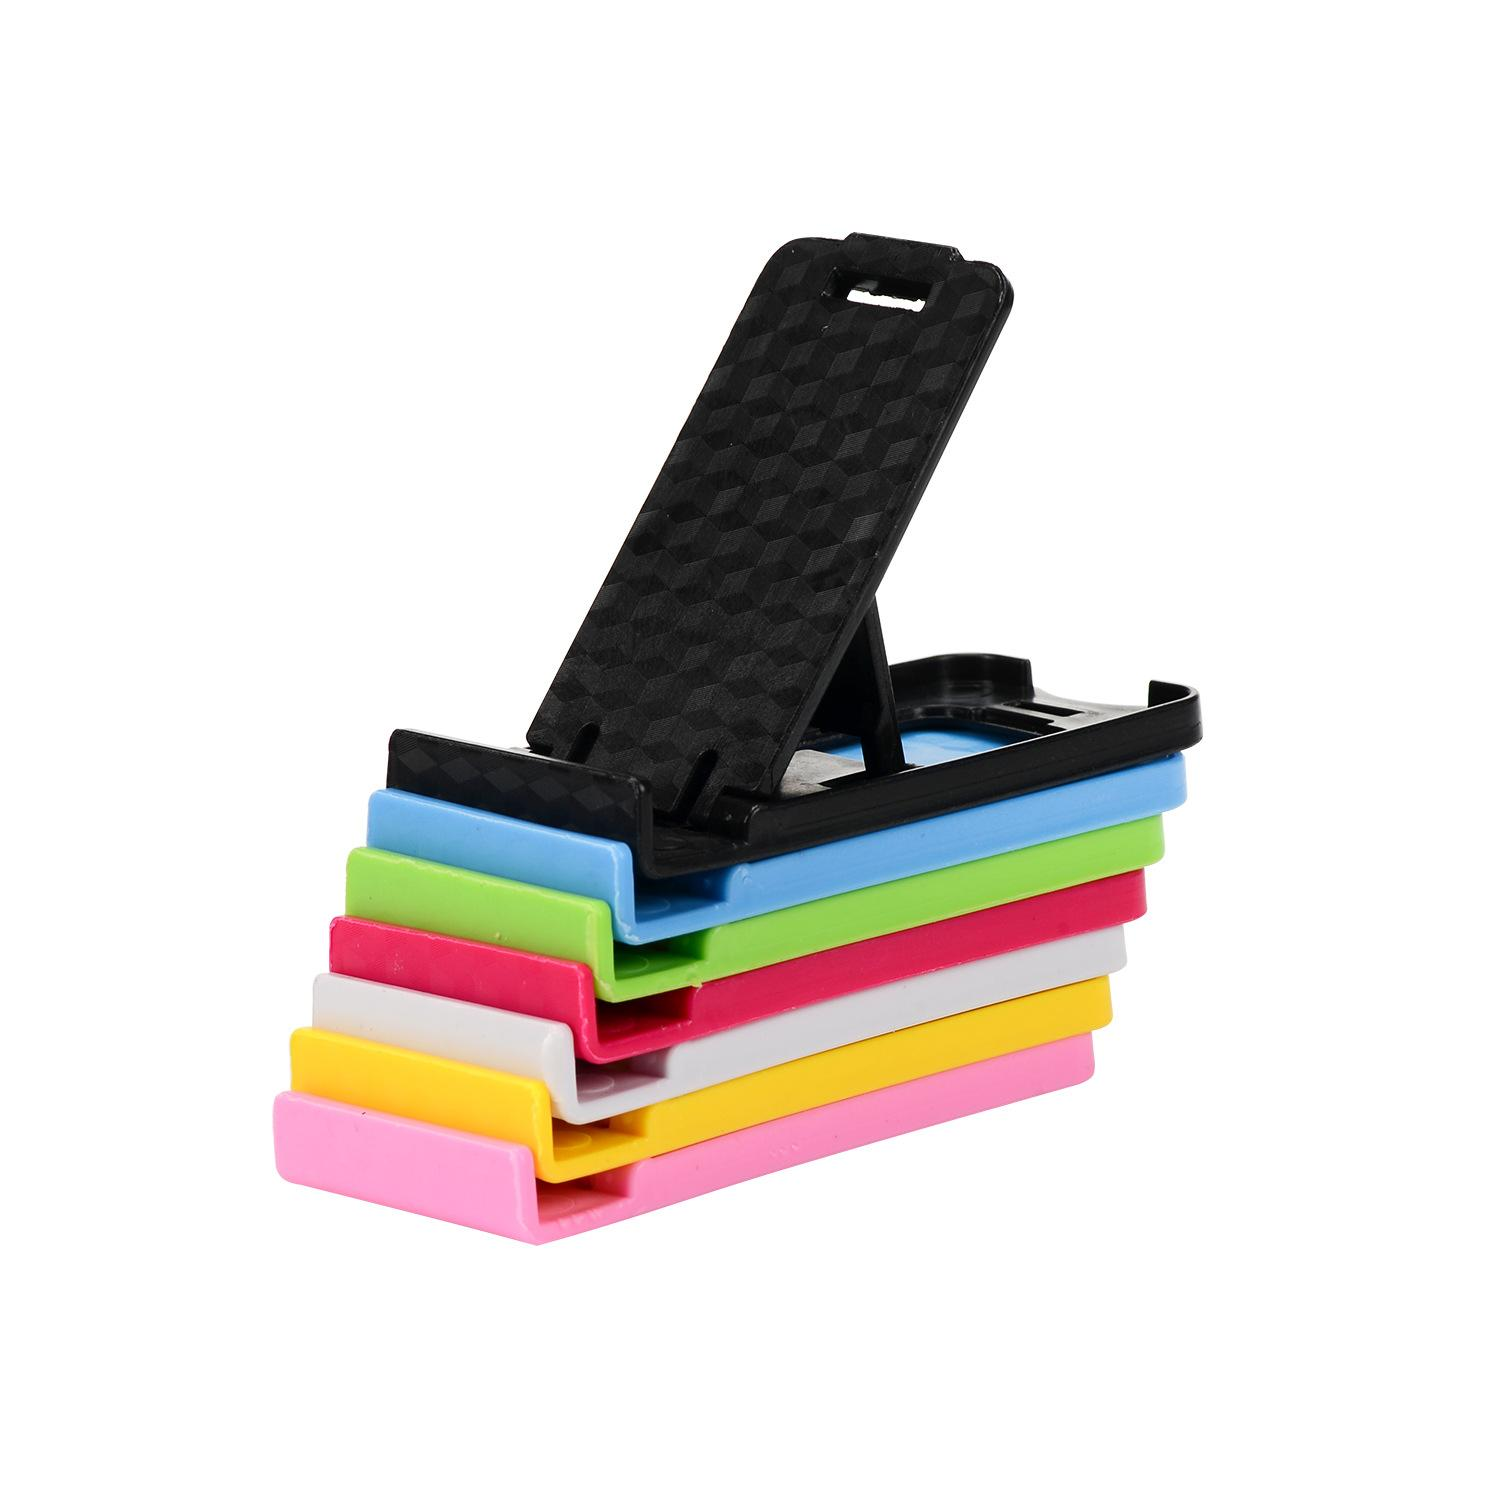 Cellphones & Telecommunications Portable Mini Mobile Phone Holder Foldable Desk Stand Holder 4 Degrees Adjustable Universal For Iphone Andorid Phone Mobile Phone Holders & Stands